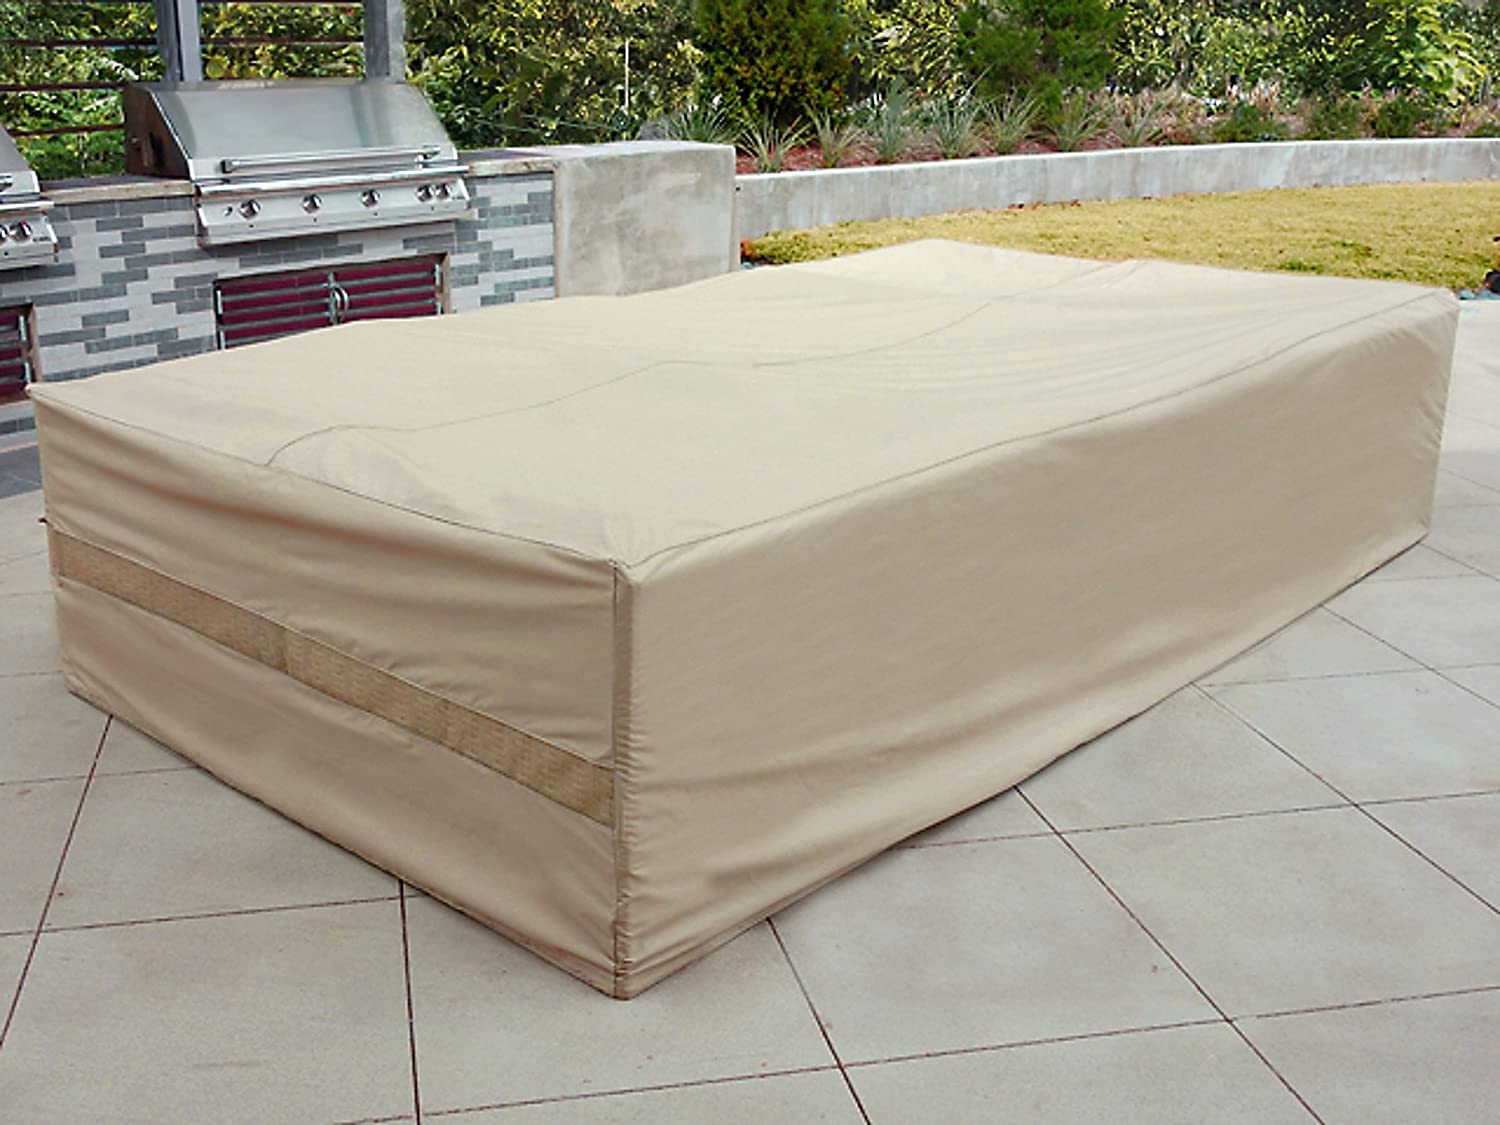 covermates patio furniture covers. amazoncom covermates sectional set cover 138w x 68d 30h elite collection 3 yr warranty year around protection khaki patio furniture covermates covers